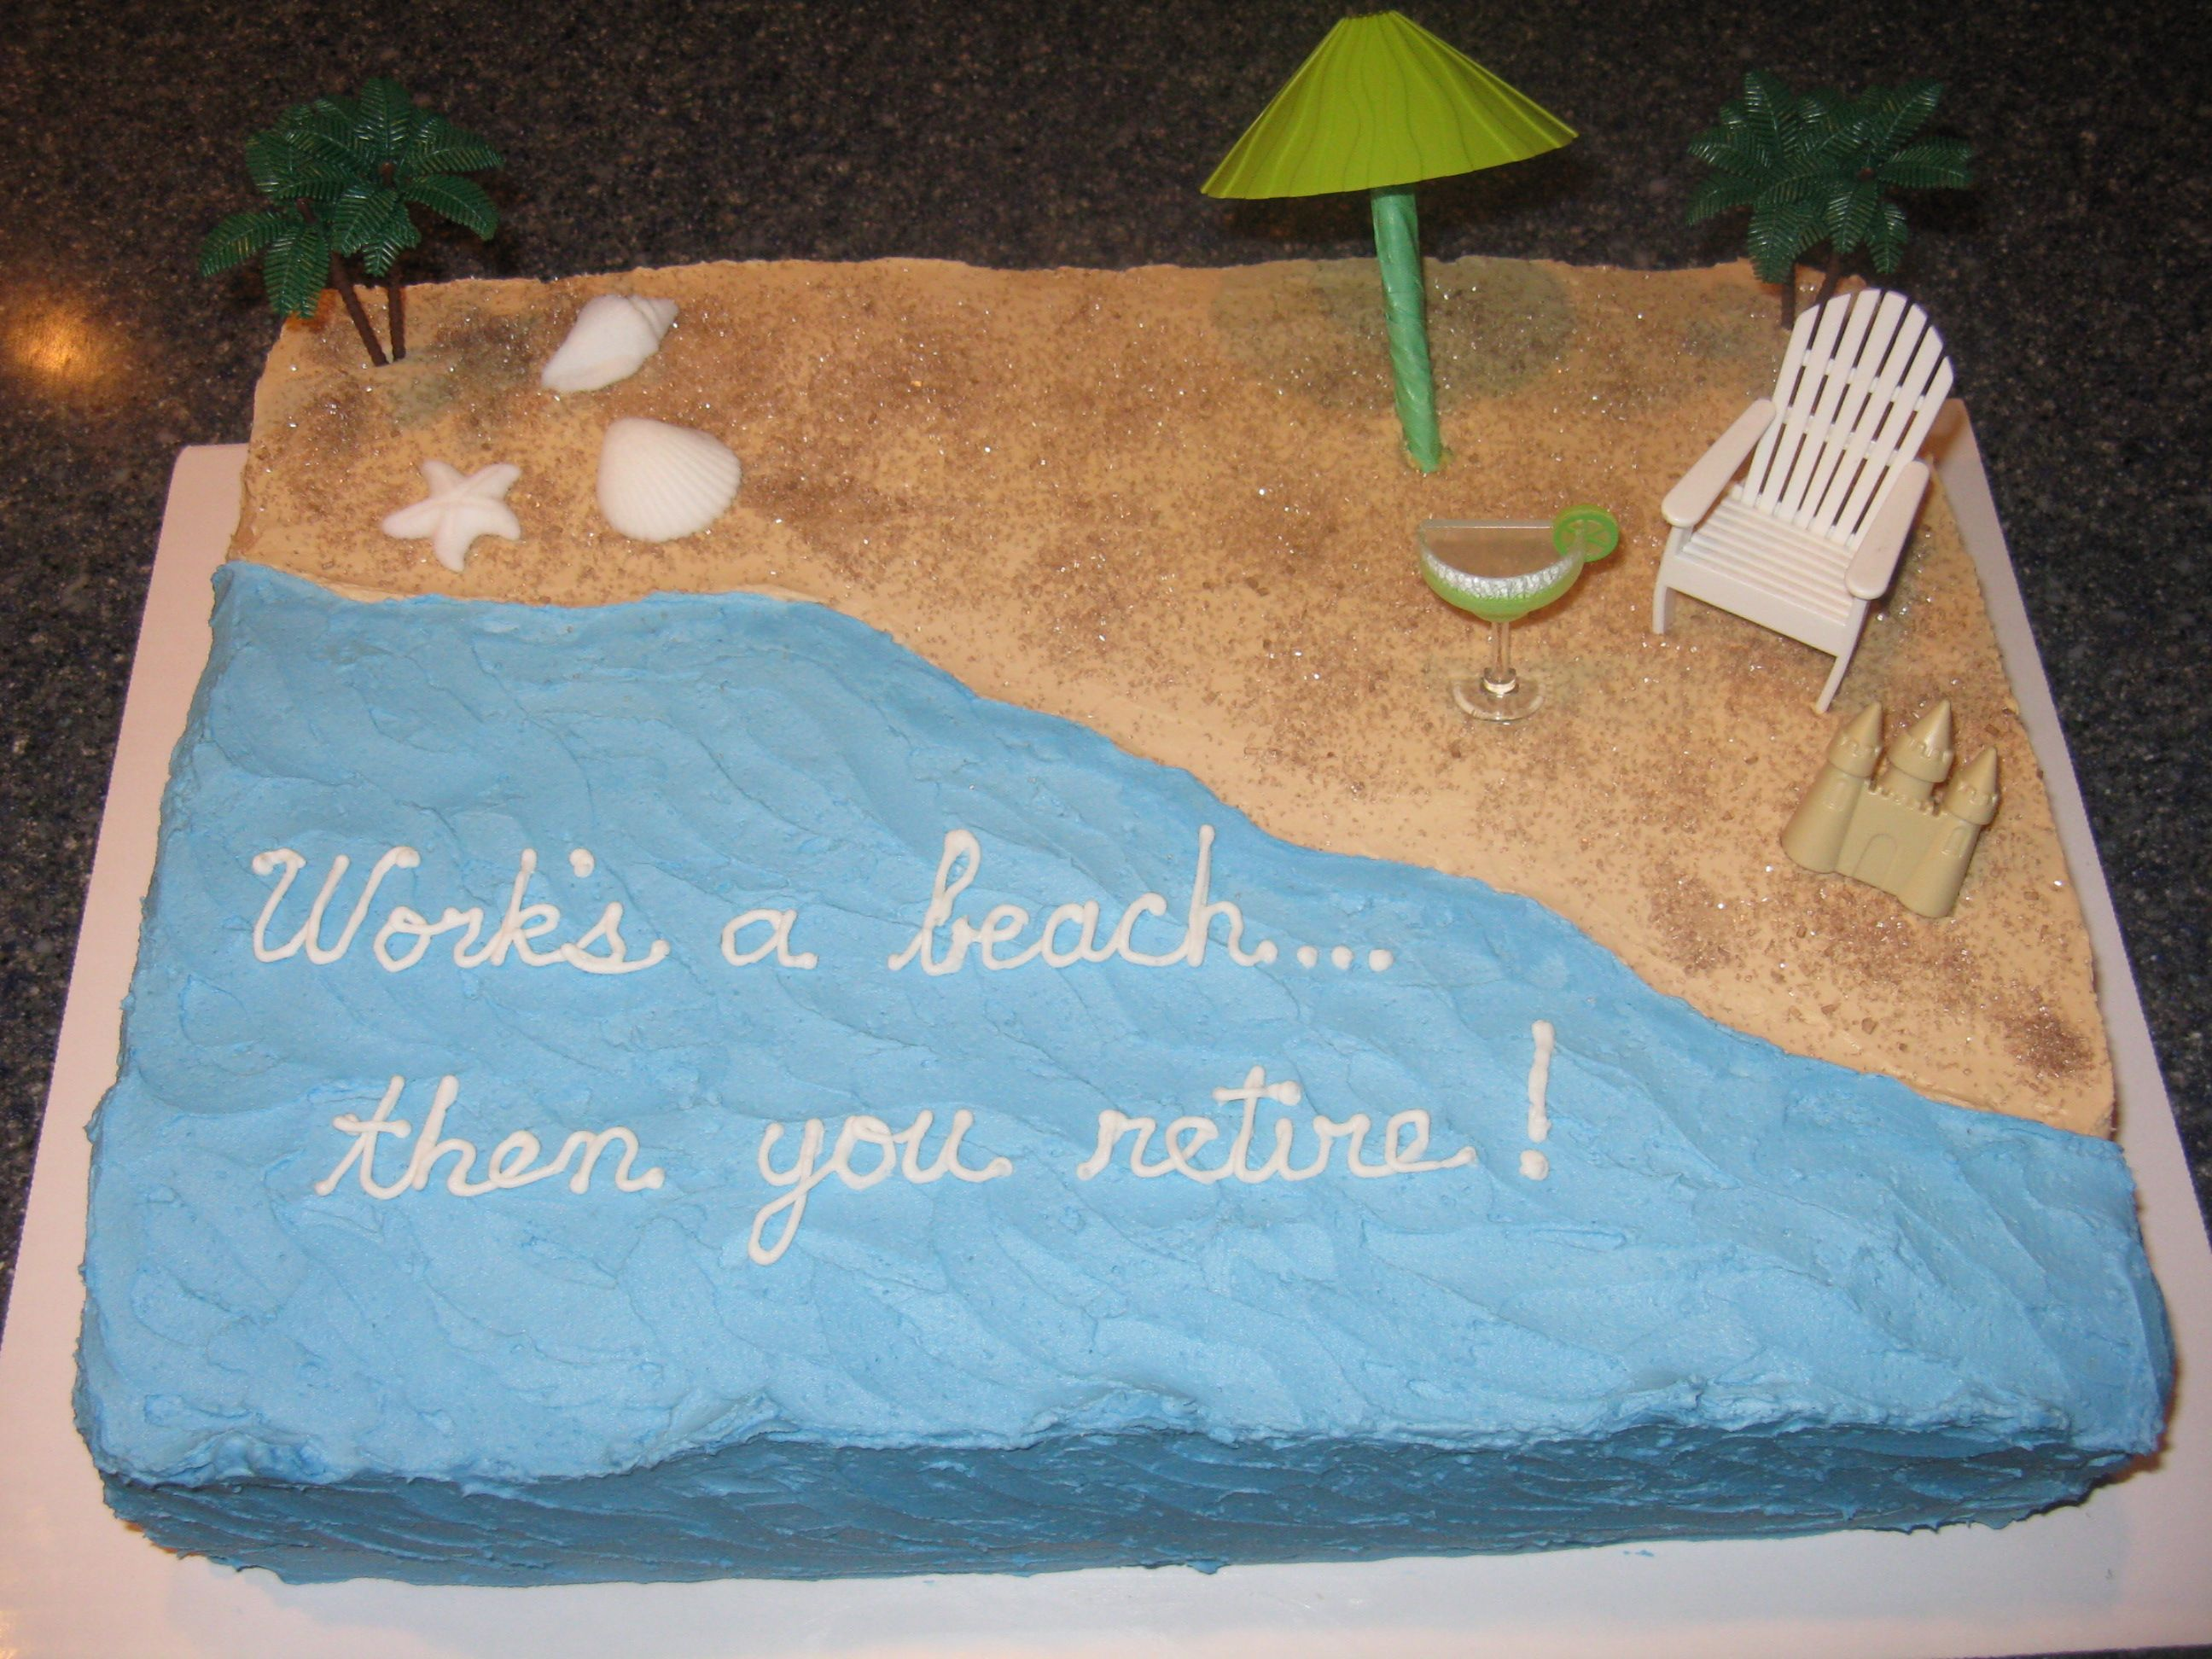 Air force cake decorations home furniture decors creating the - Work S A Beach Retirement Cake